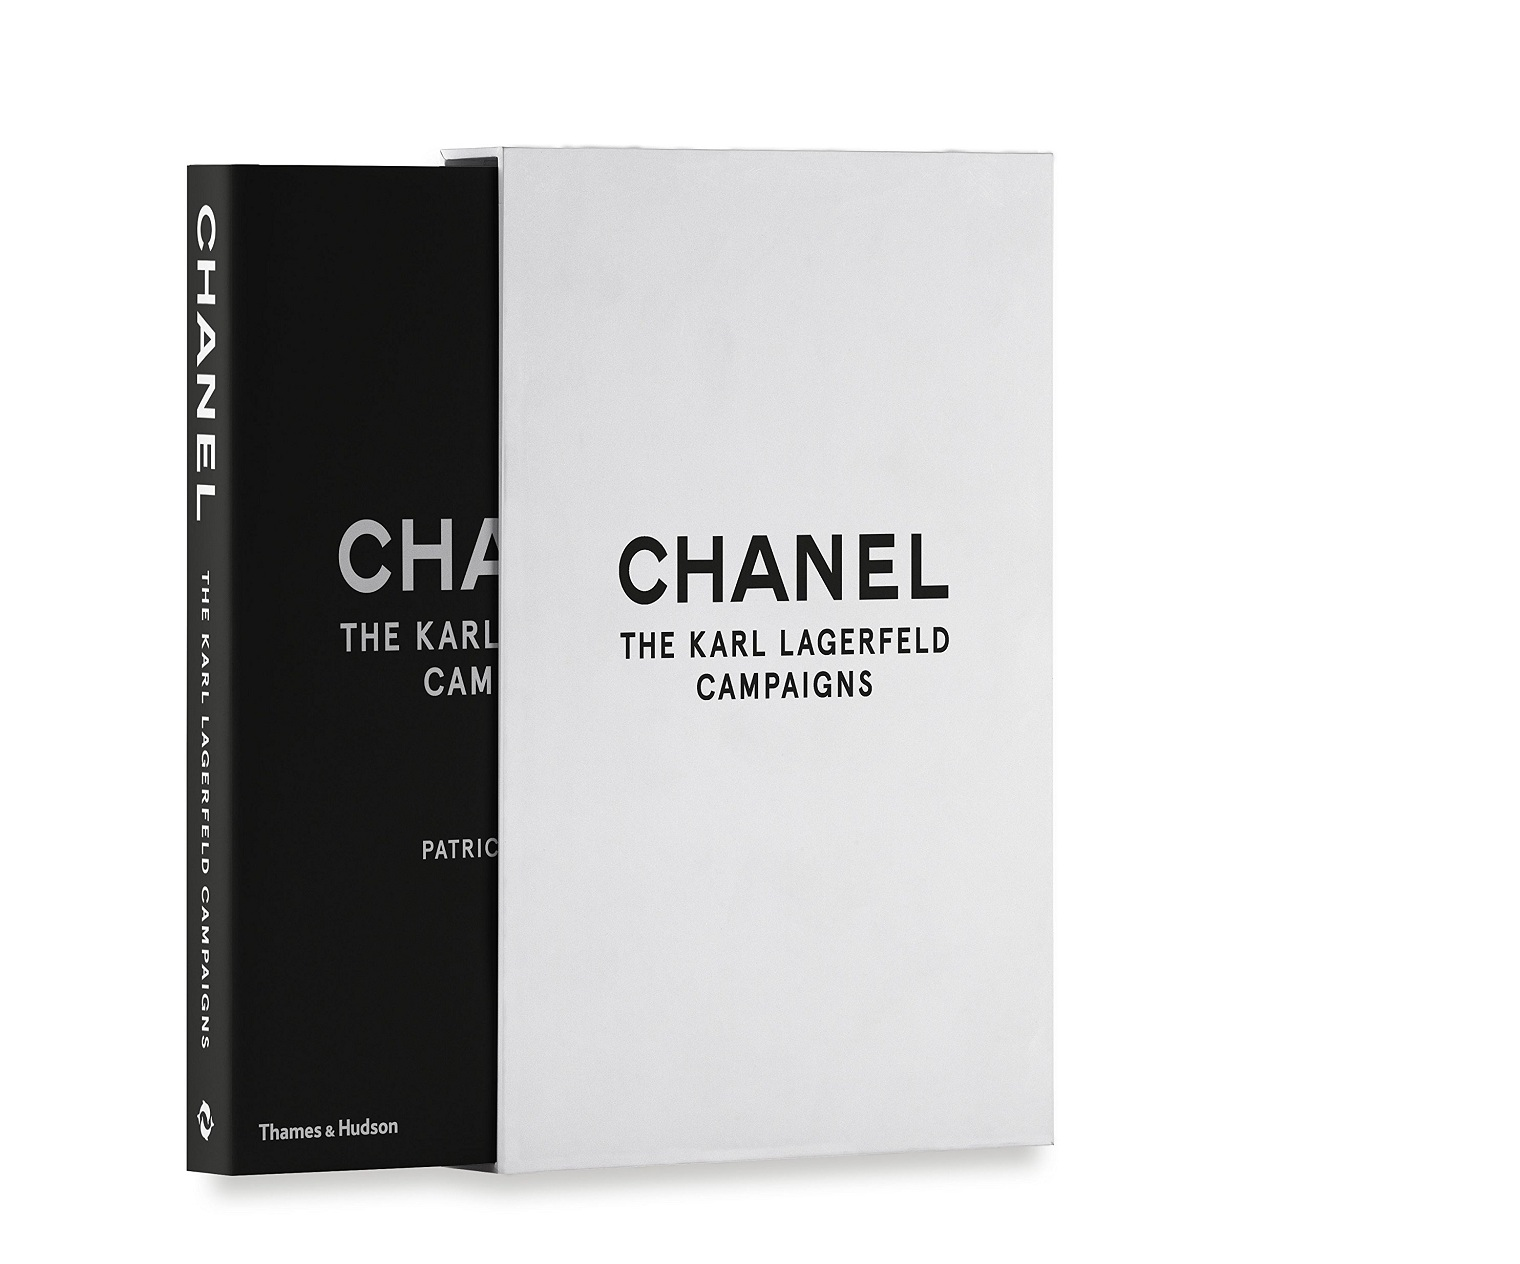 Chanel Karl Lagerfeld Campaigns book Fashionela